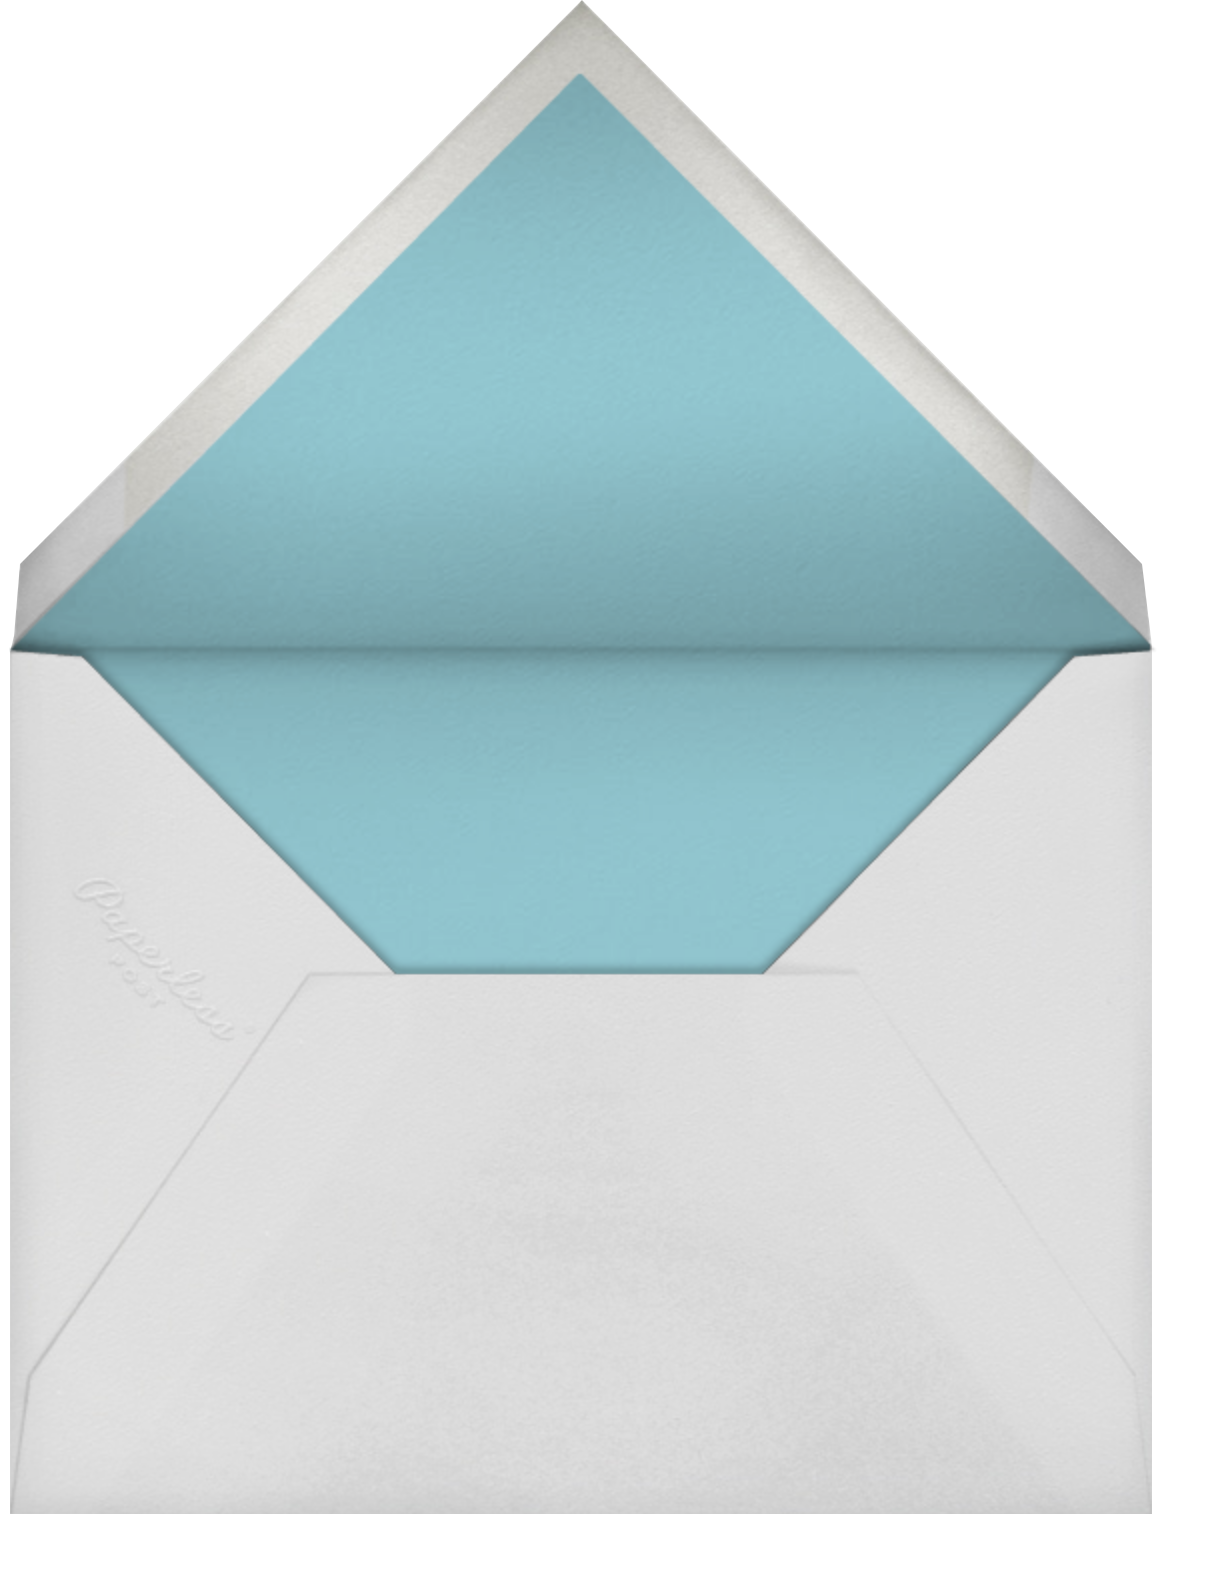 To-Do List - Paperless Post - Envelope